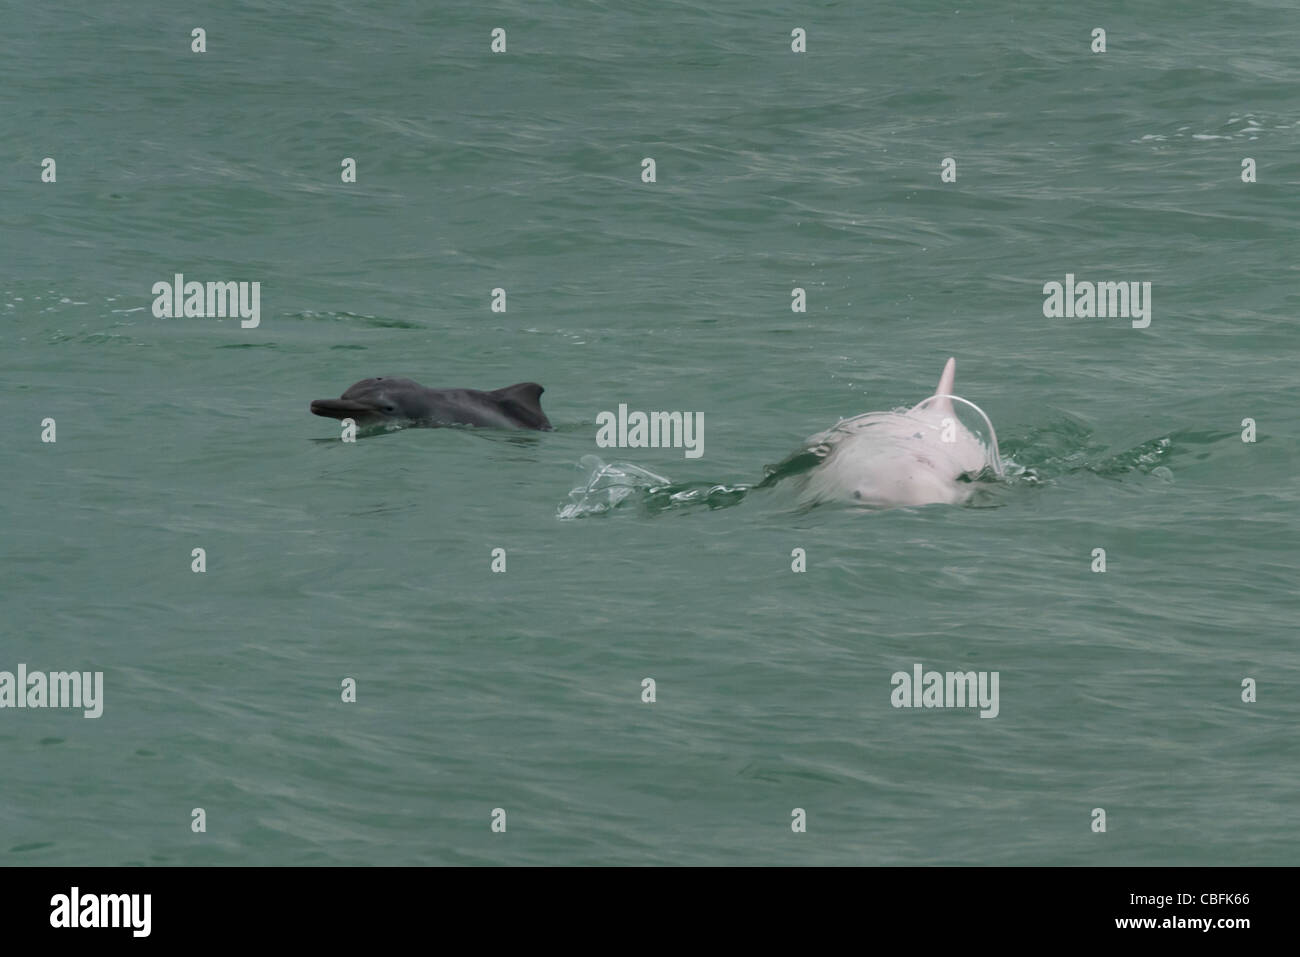 Indo-Pacific Humpback Dolphin (Sousa chinensis), adult female & calf surfacing. Hong Kong, Pearl River Delta. - Stock Image